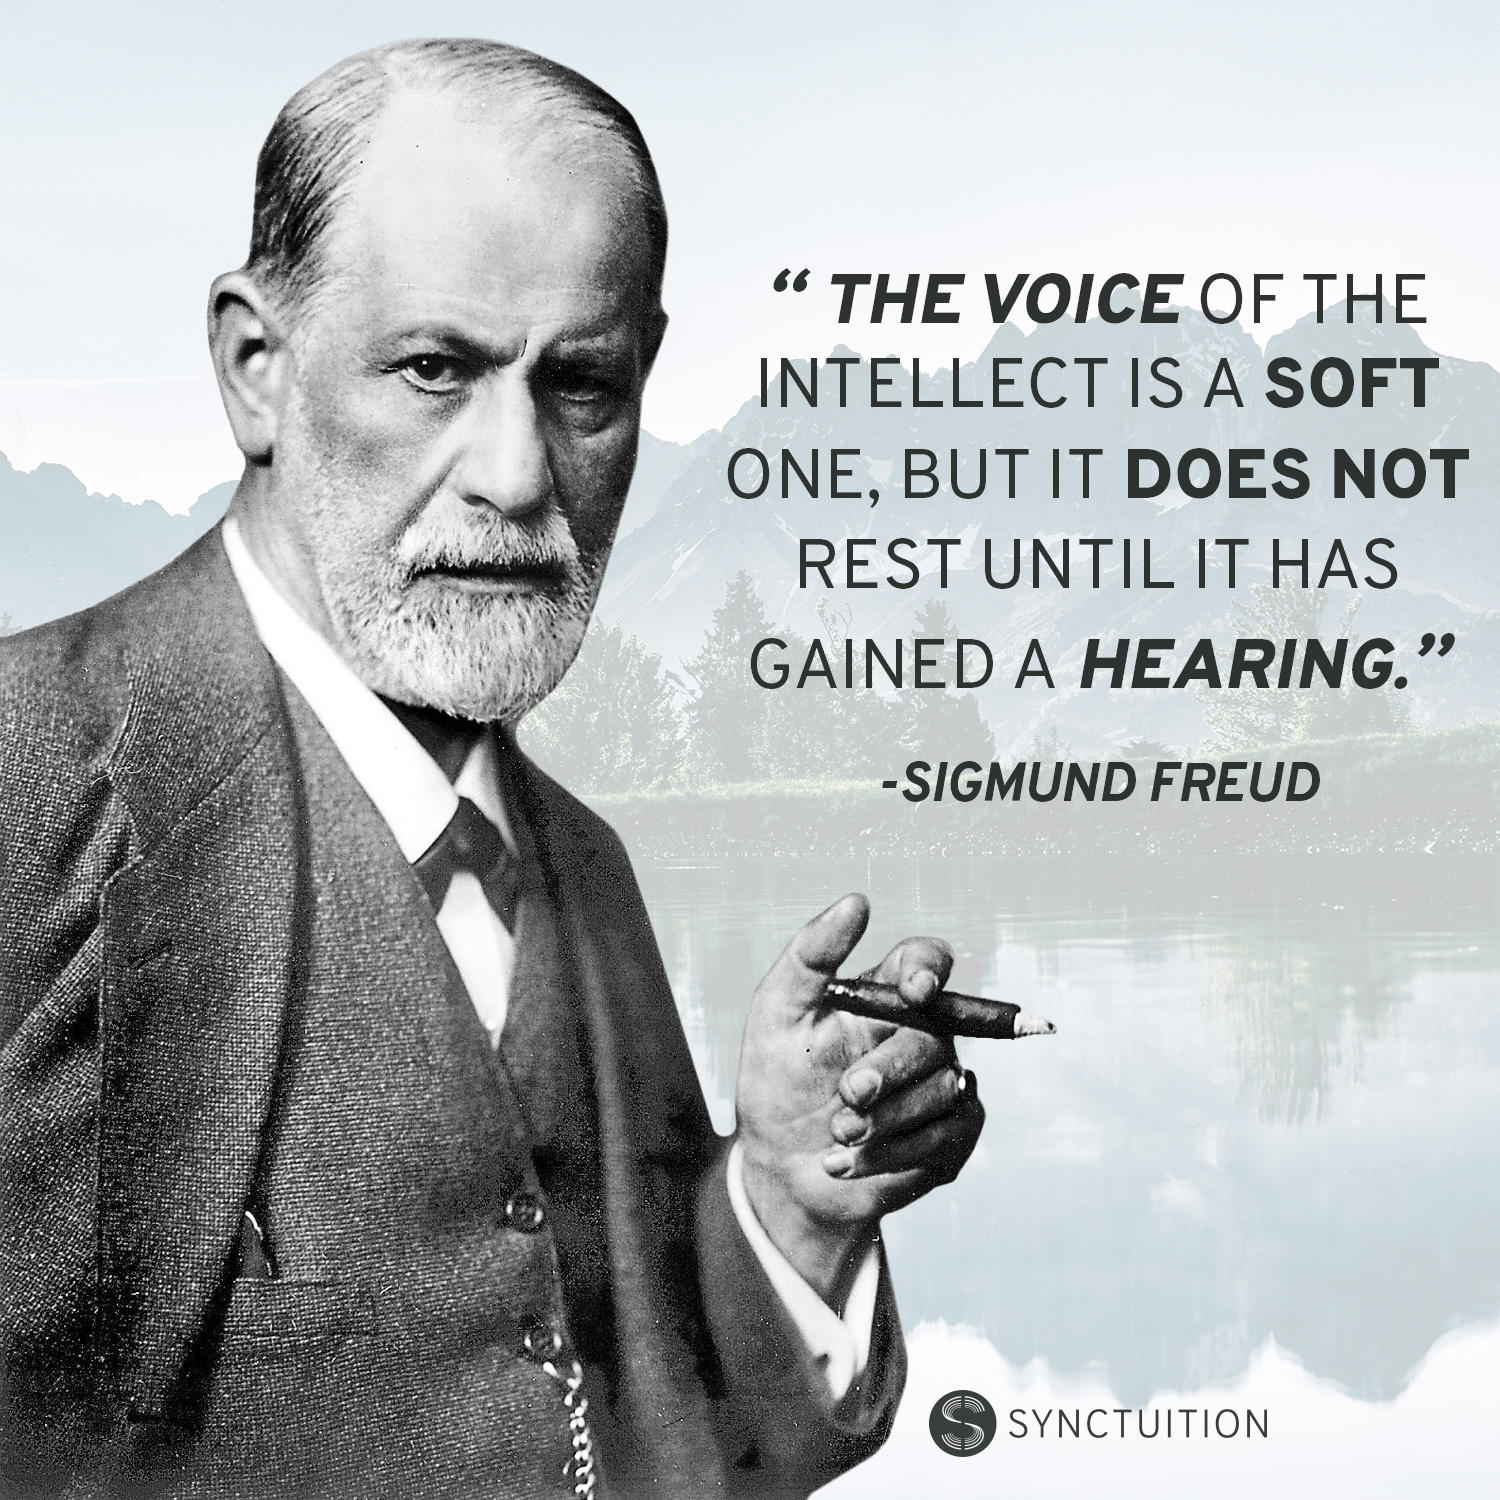 Freud quote: